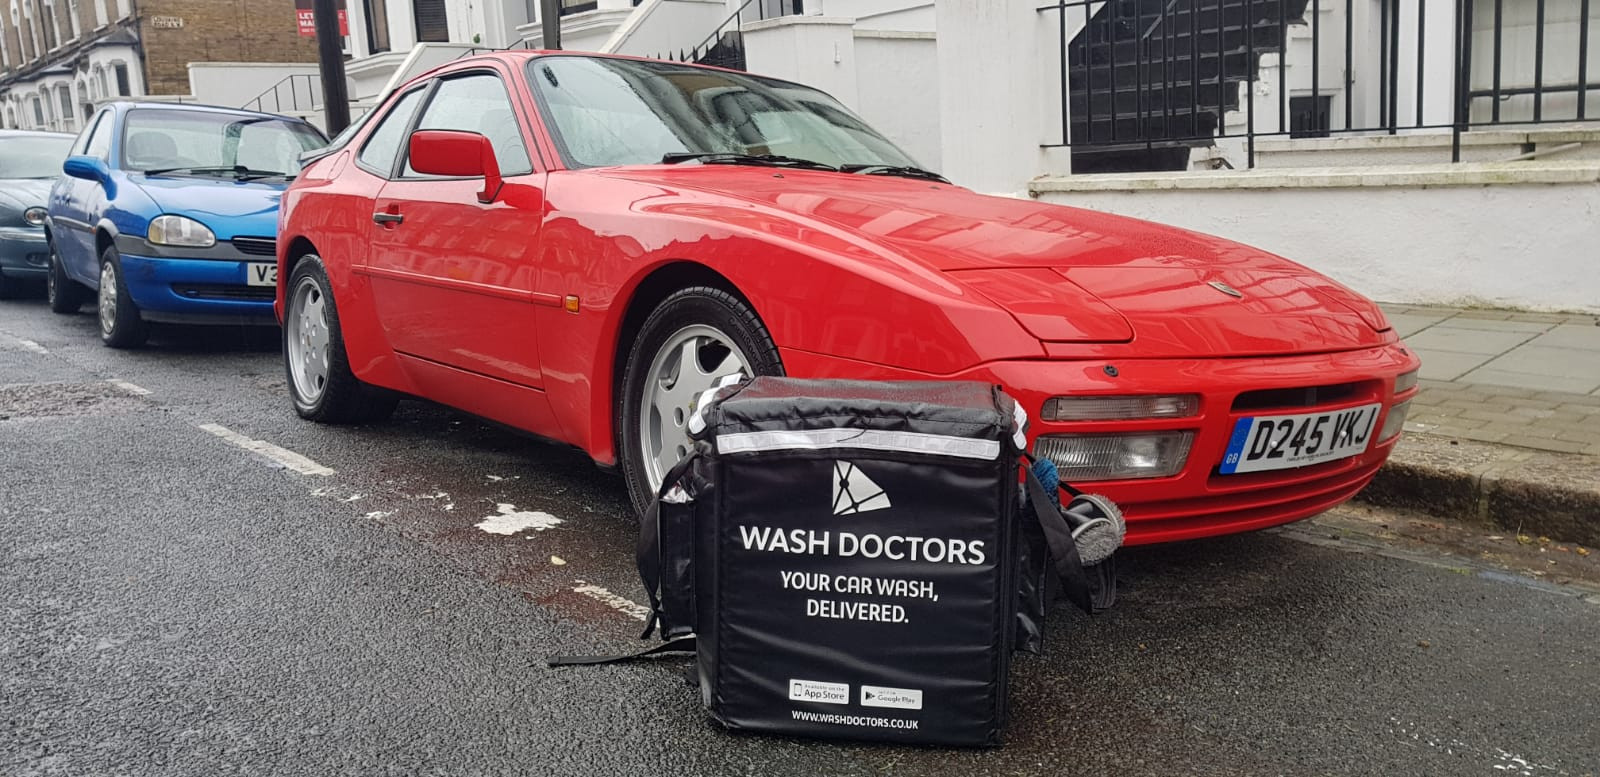 Wash Doctors clean car